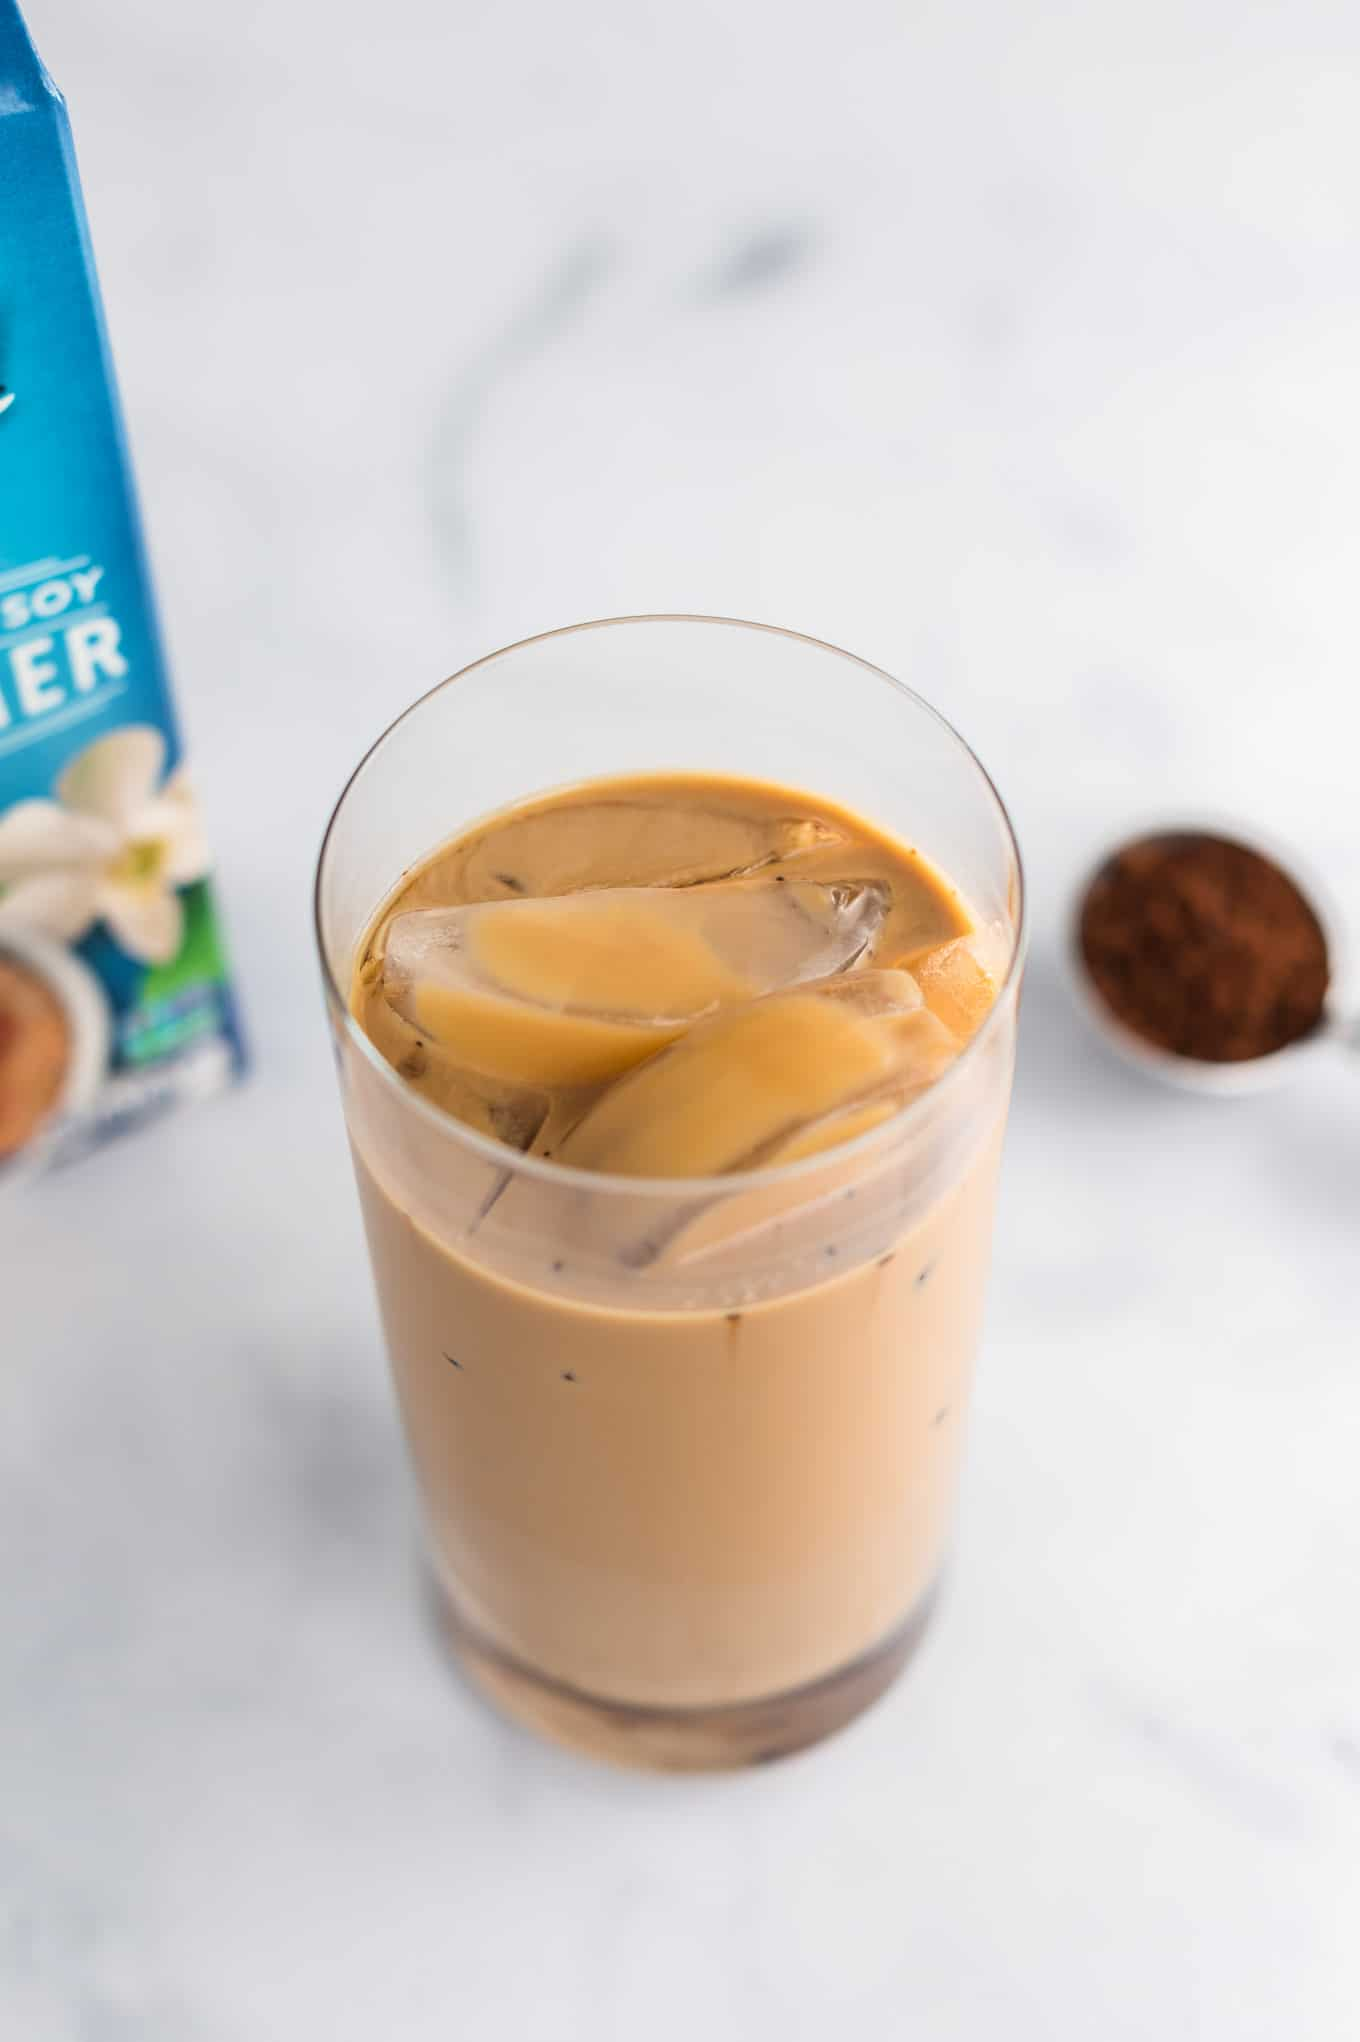 coffee in a glass with ice cubes